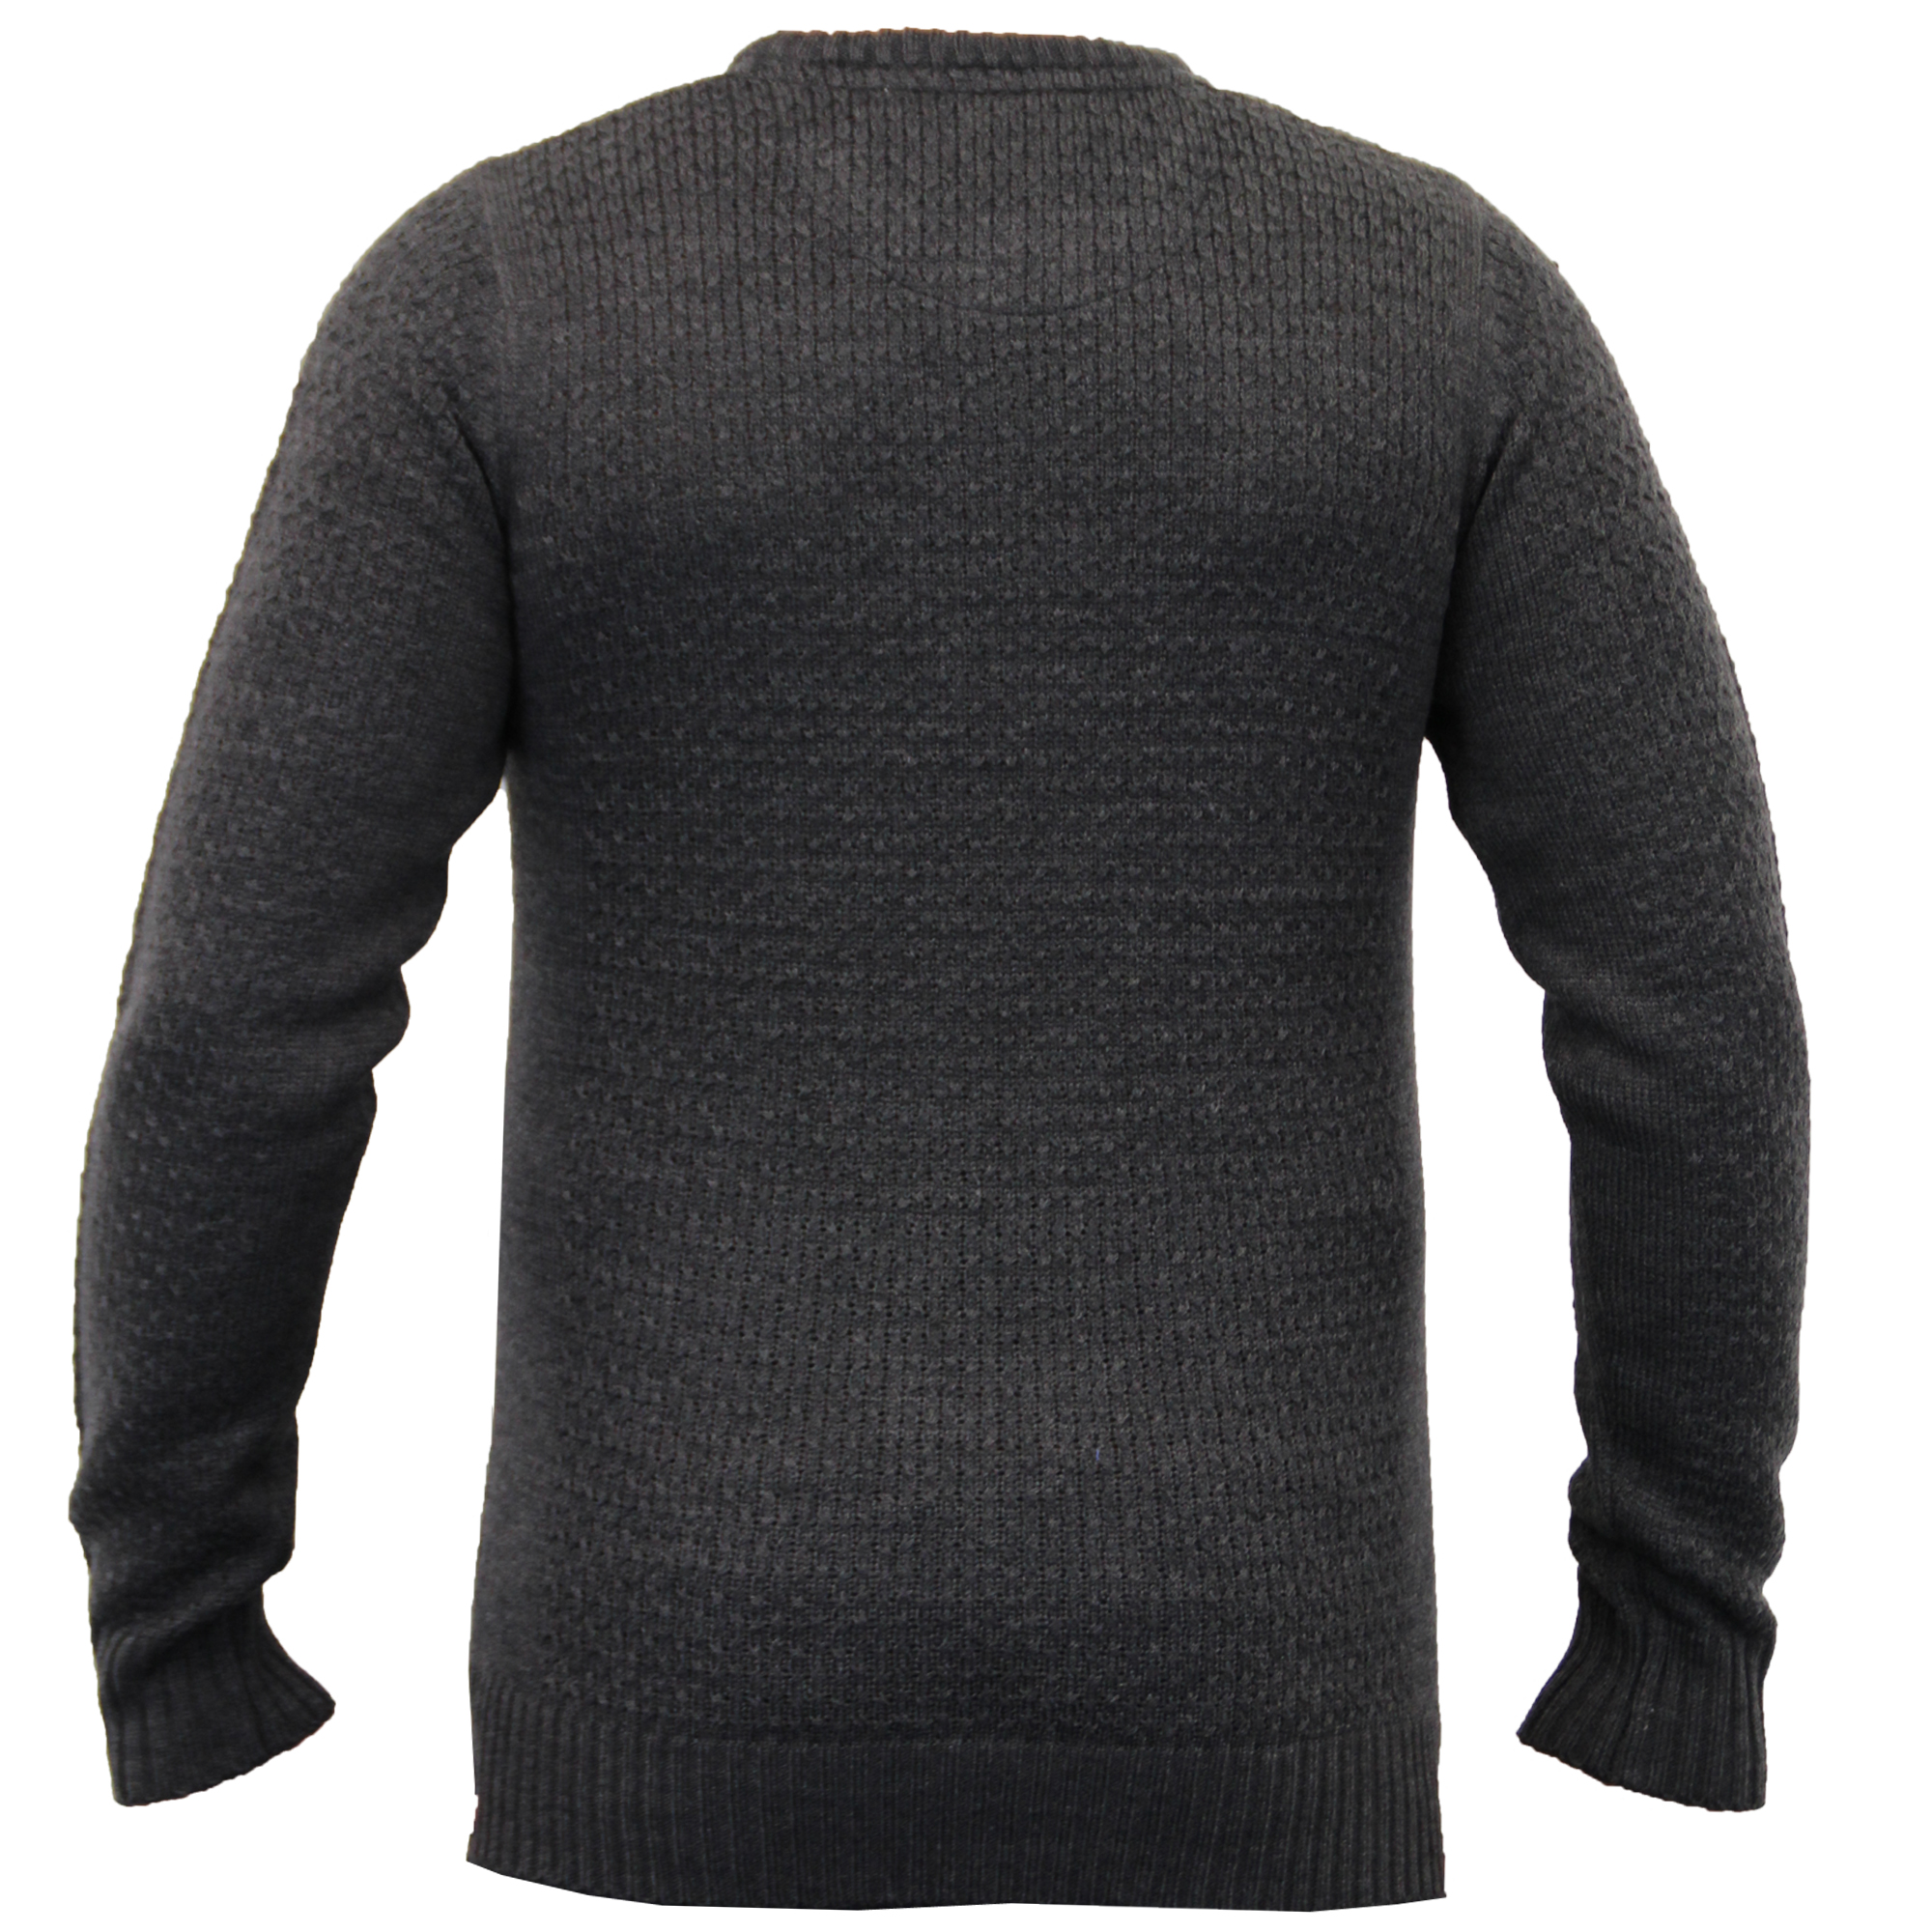 Mens-Knitted-Sweater-Pullover-Jumpers-By-Brave-Soul thumbnail 3